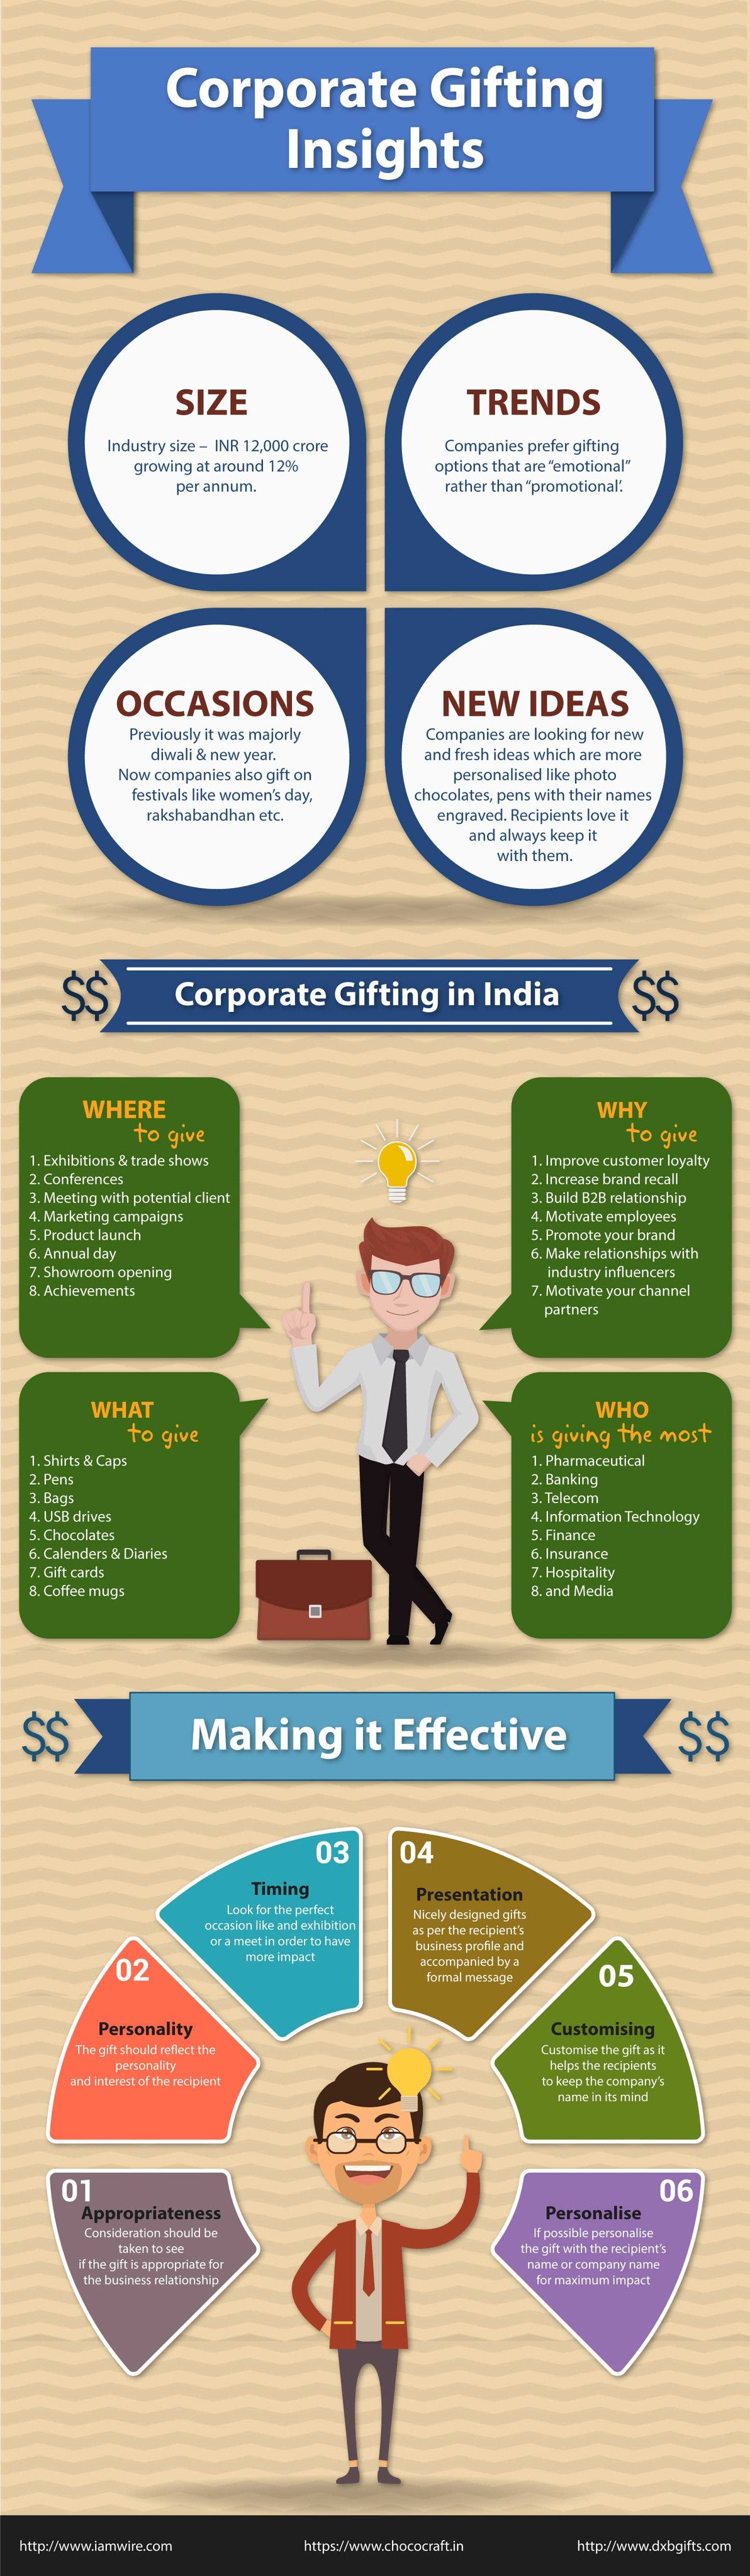 corporate gifting insights